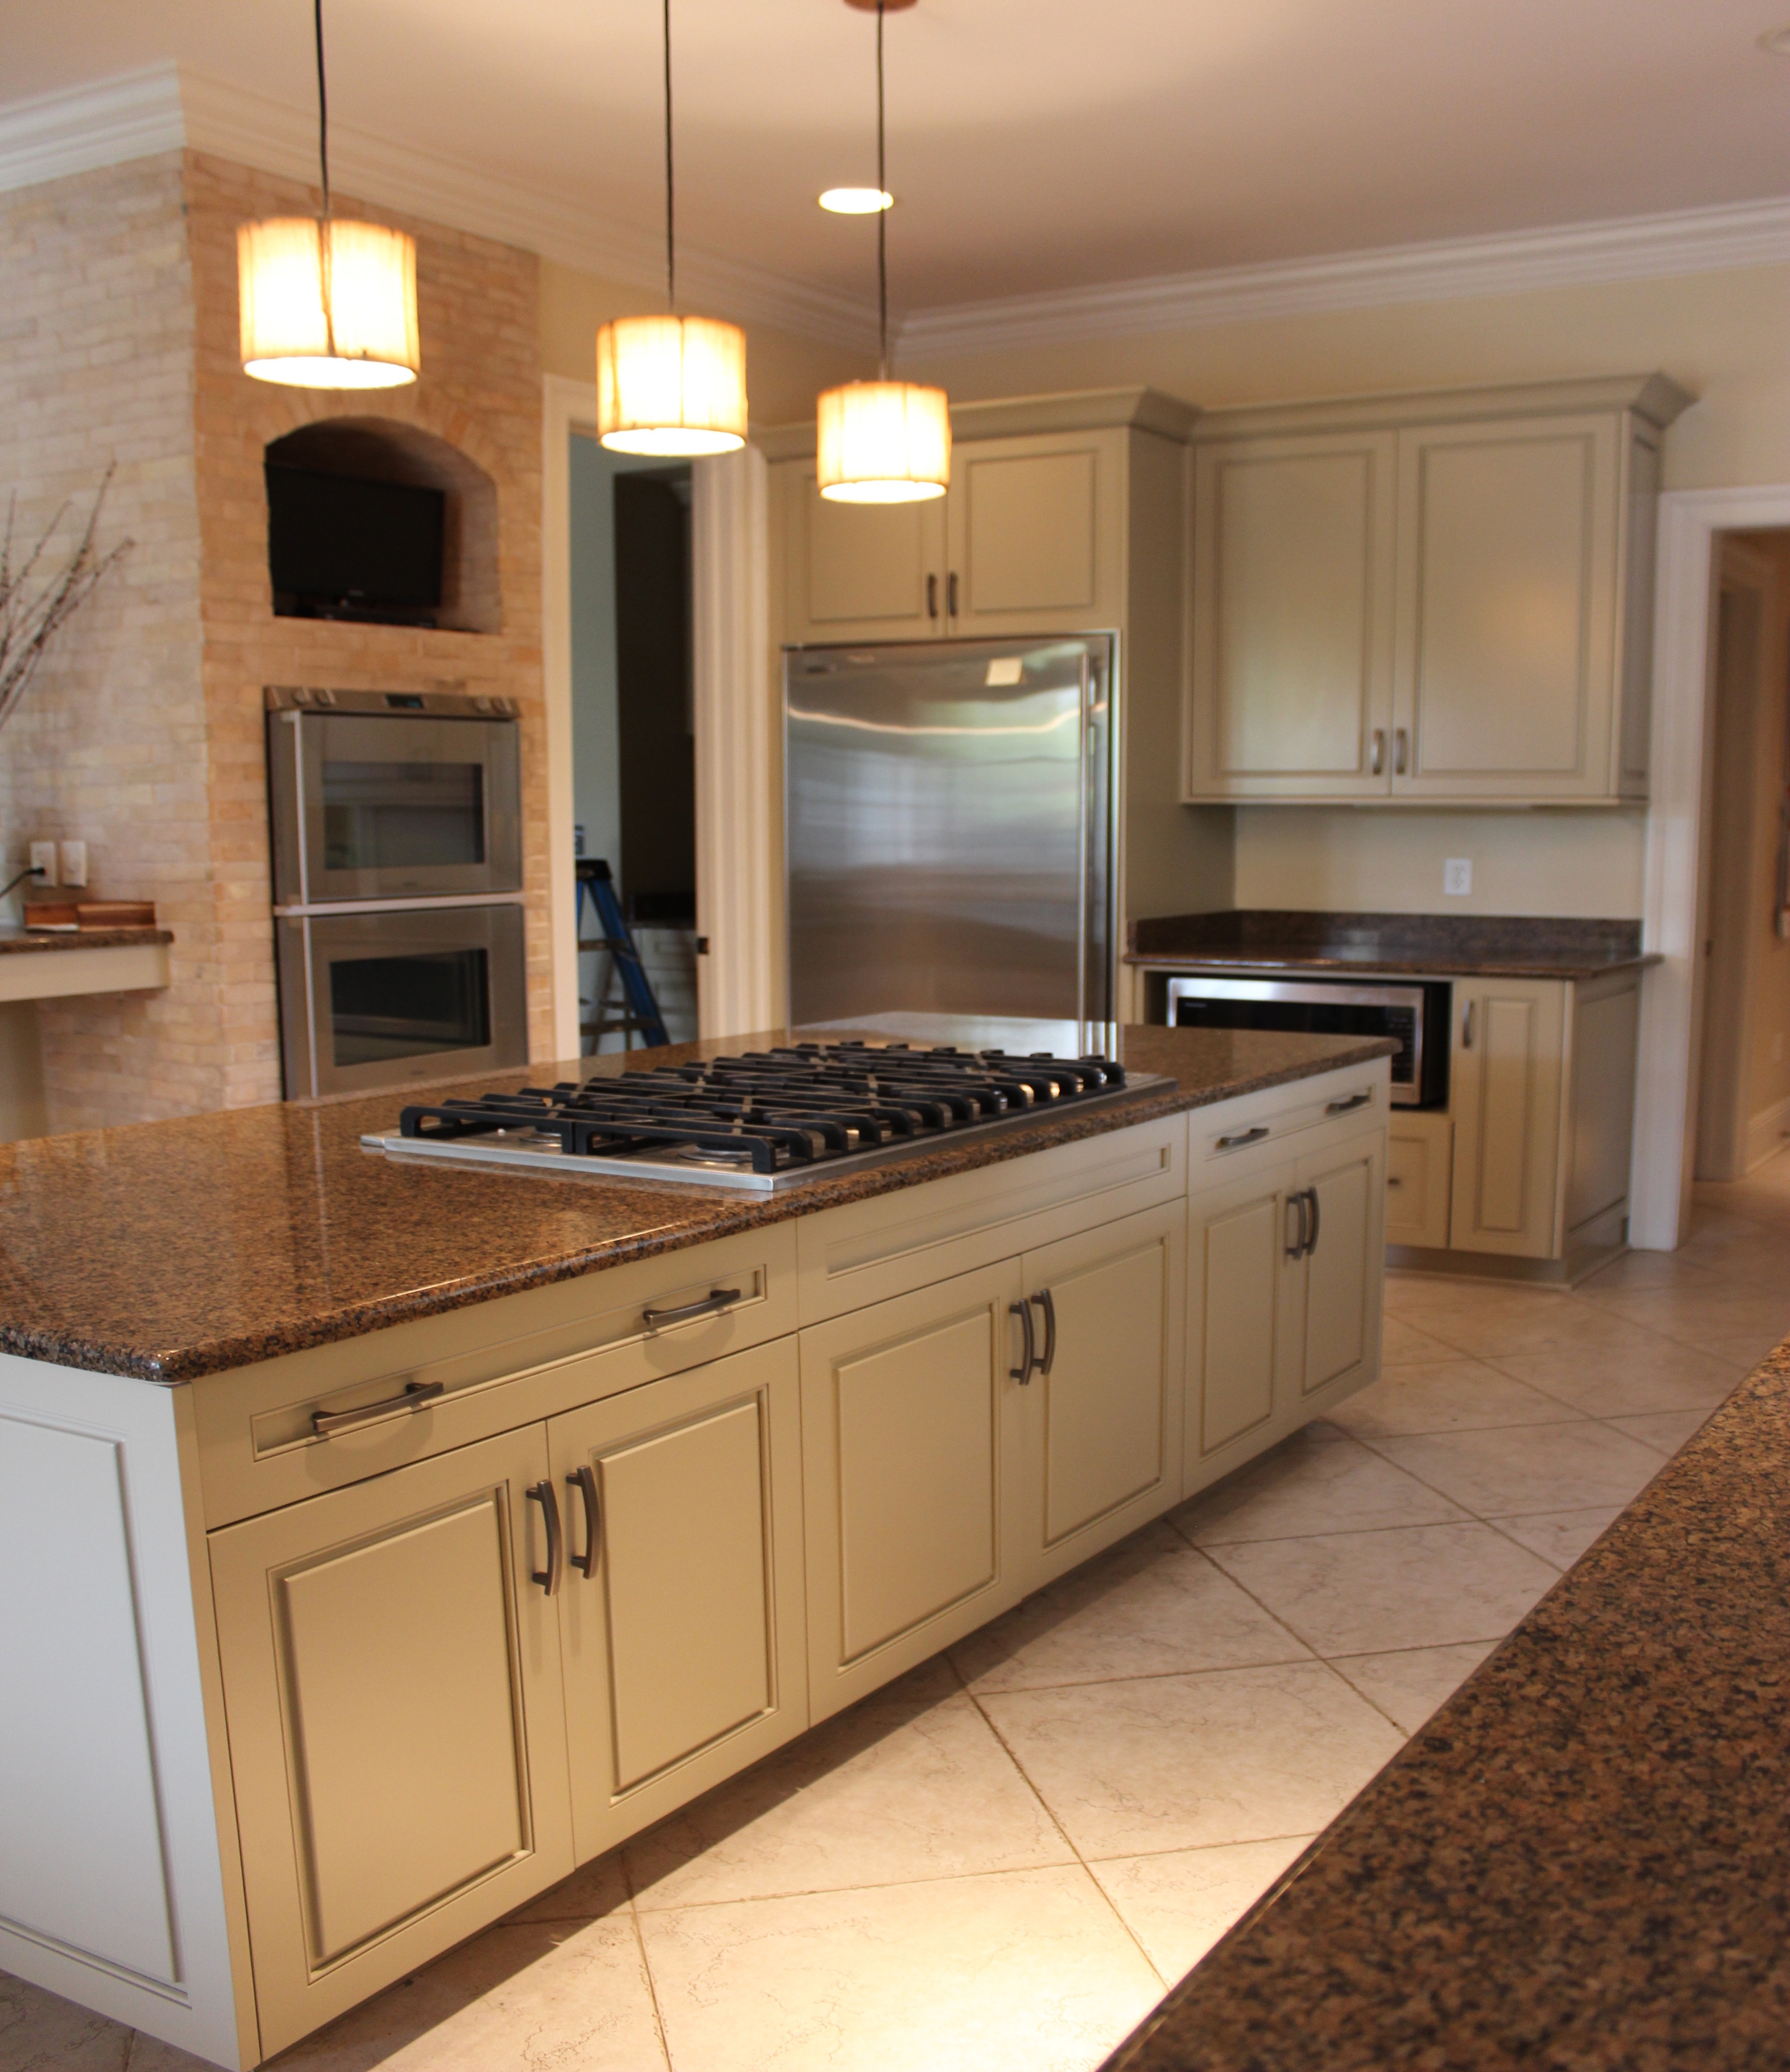 repainting kitchen cabinets ovens jason bertoniere painting contractor » blog archive ...